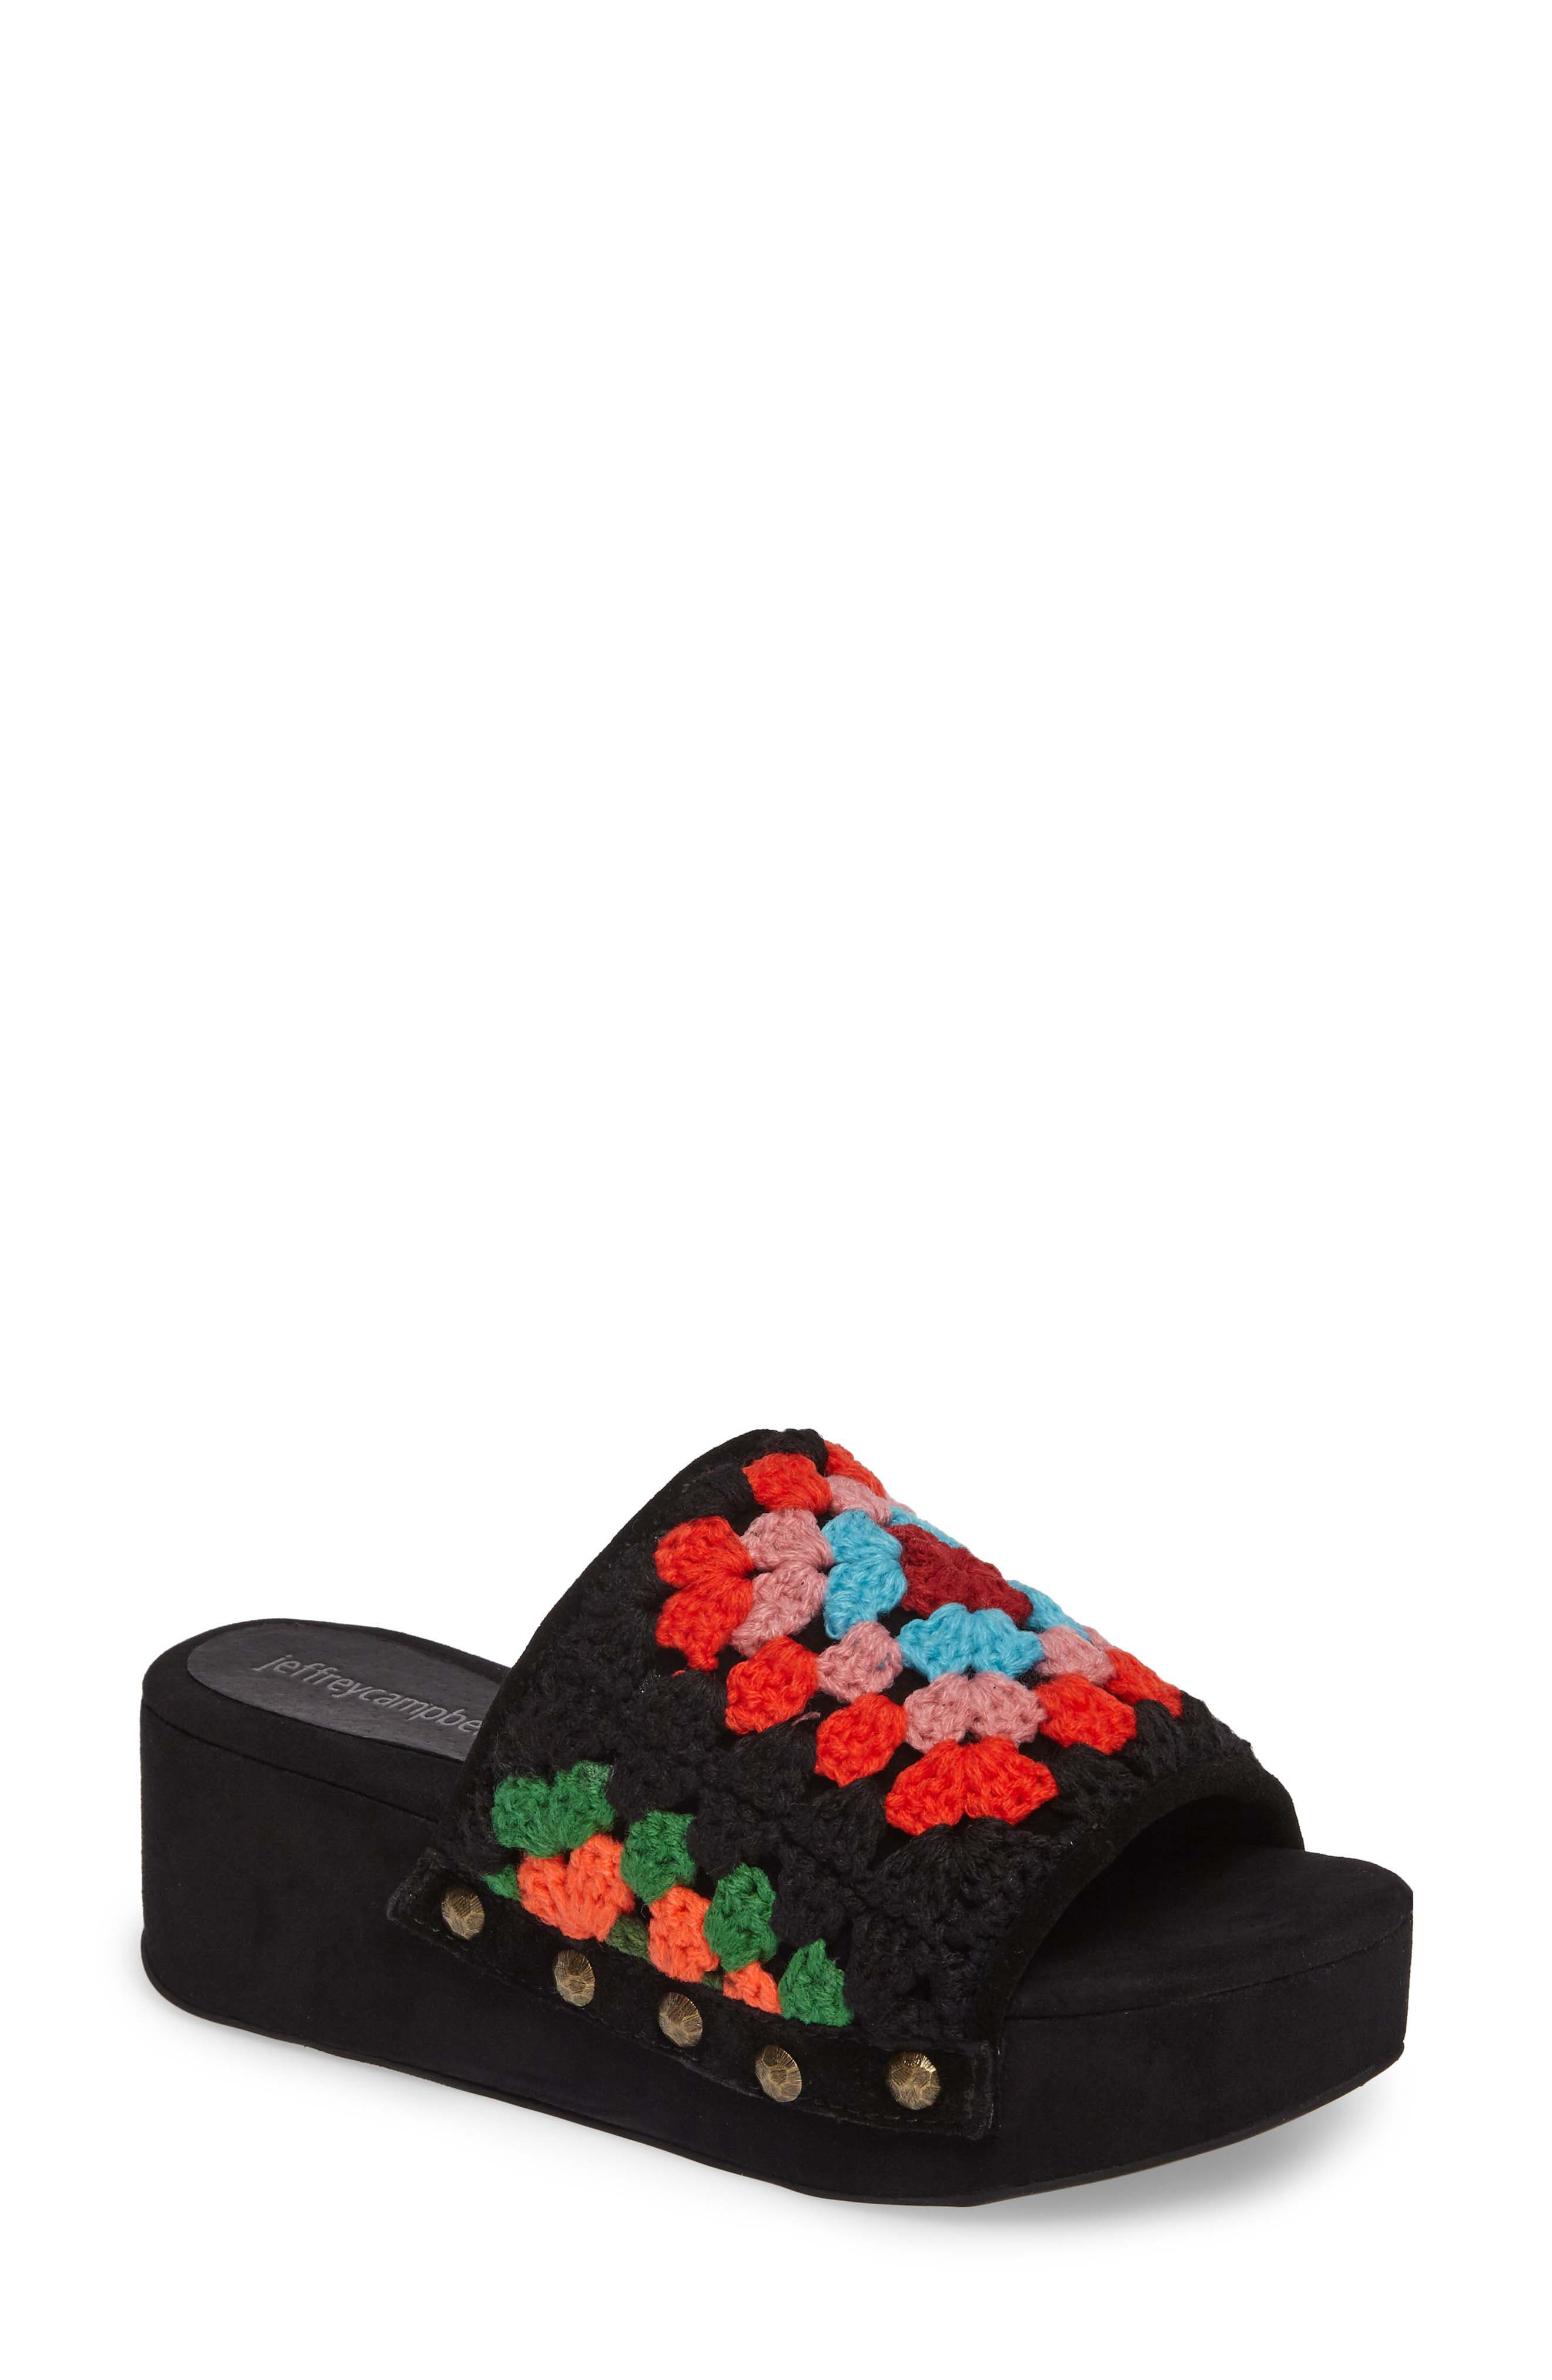 Jeffrey Campbell Nonna Crocheted Platform Slide Sandal (Women)